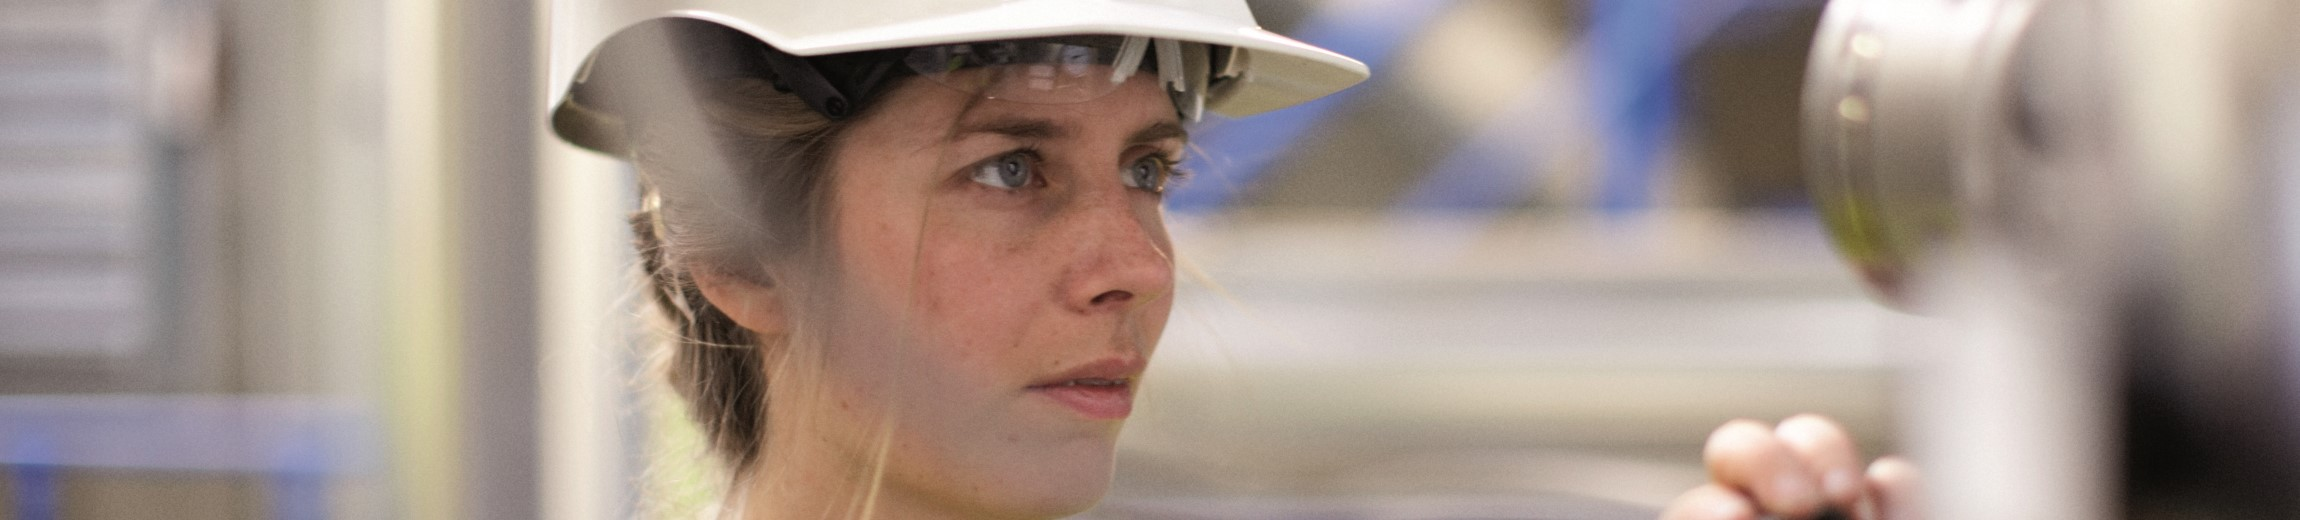 Female Statkraft employee